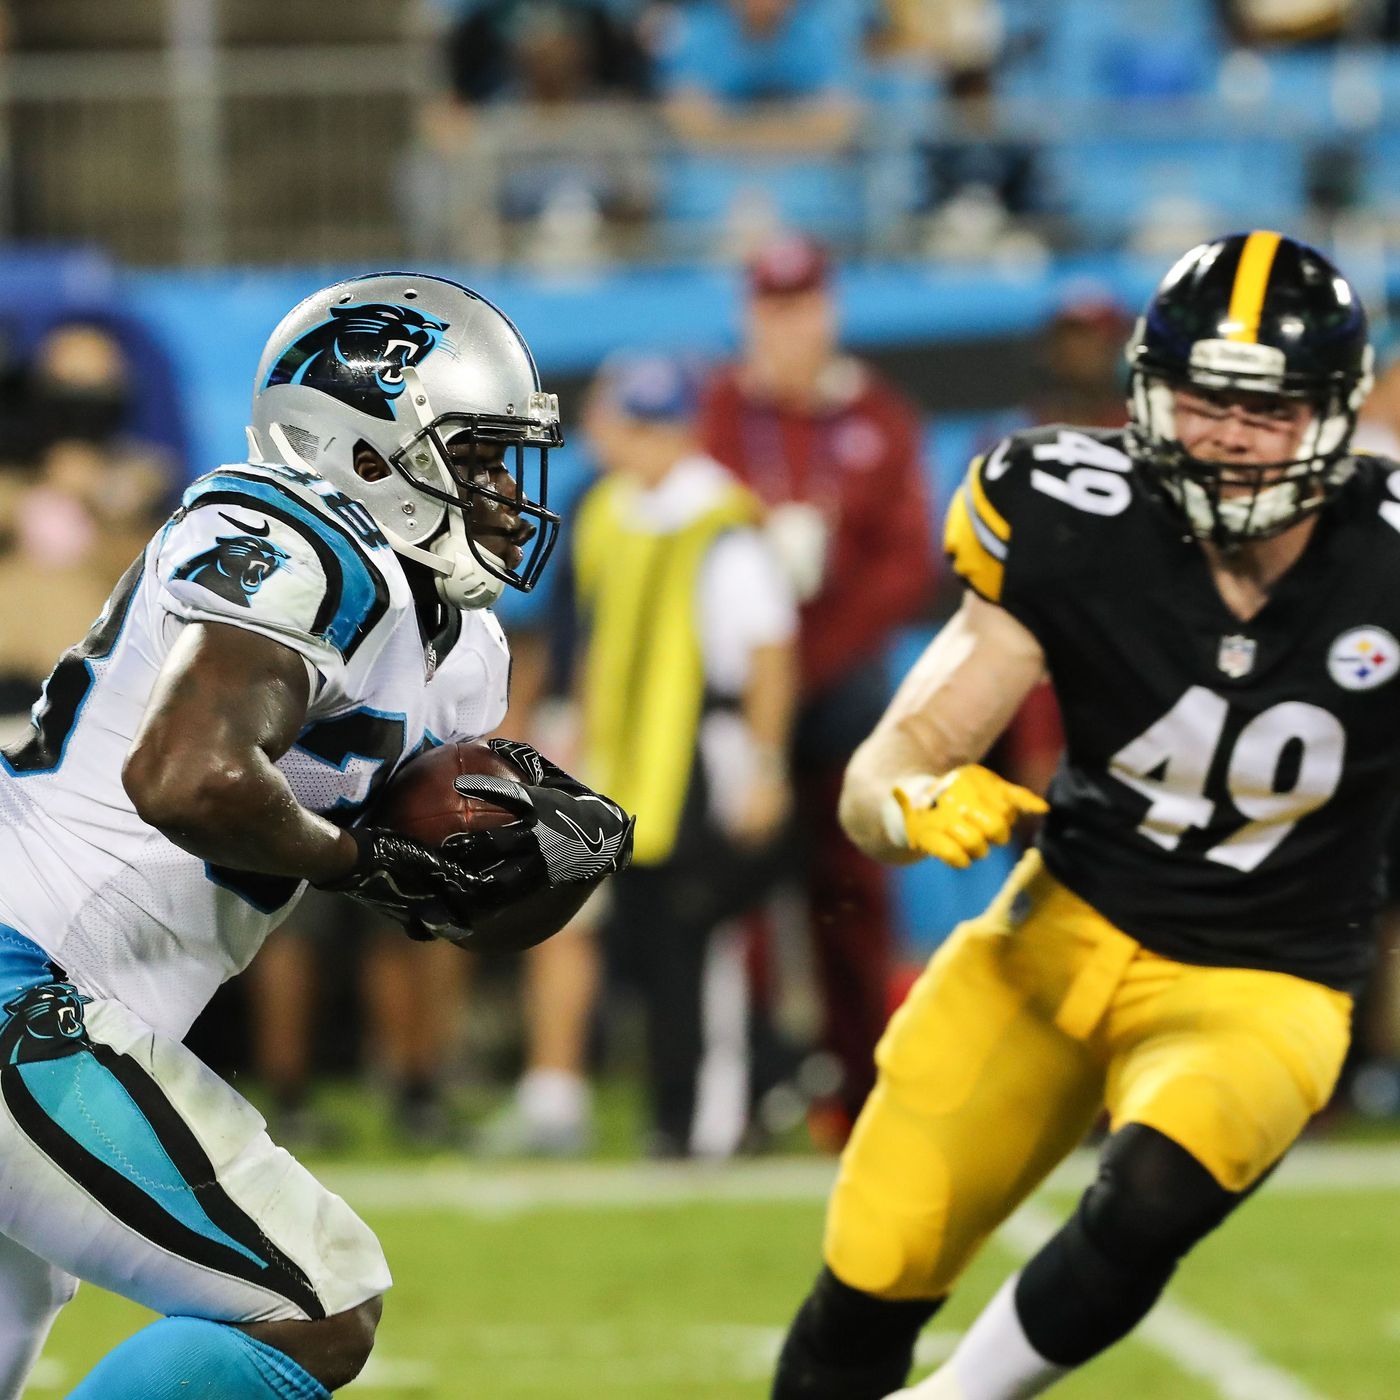 f3cb09df9 Panthers 24 Steelers 39  Panthers fall short in preseason finale in  Pittsburgh